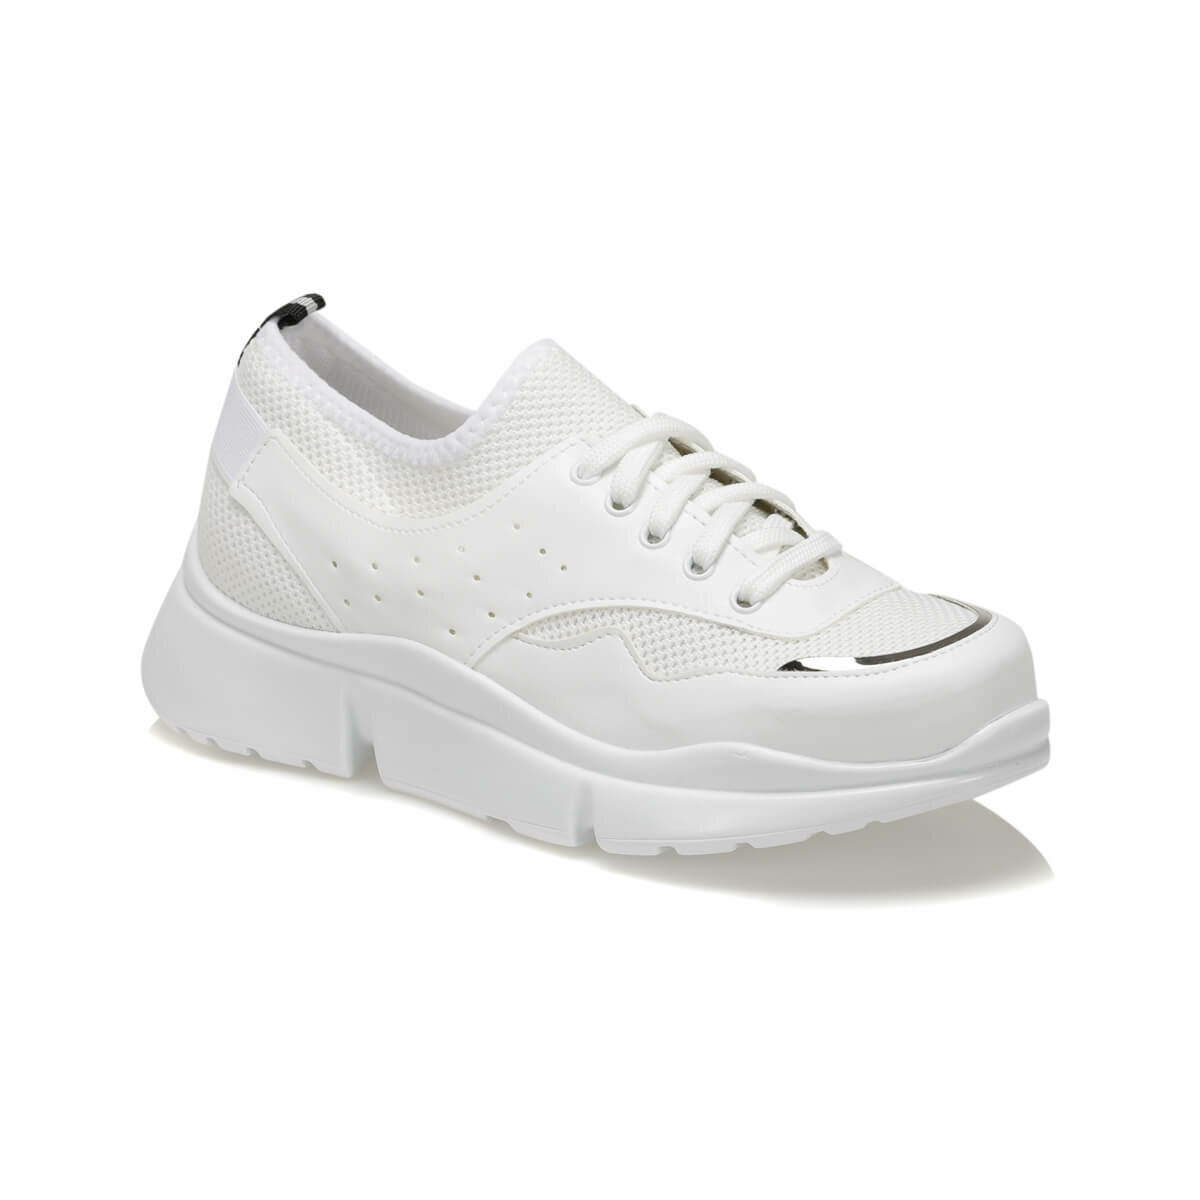 FLO MELTEM01Z SKIN White Women 'S Sneaker Shoes BUTIGO